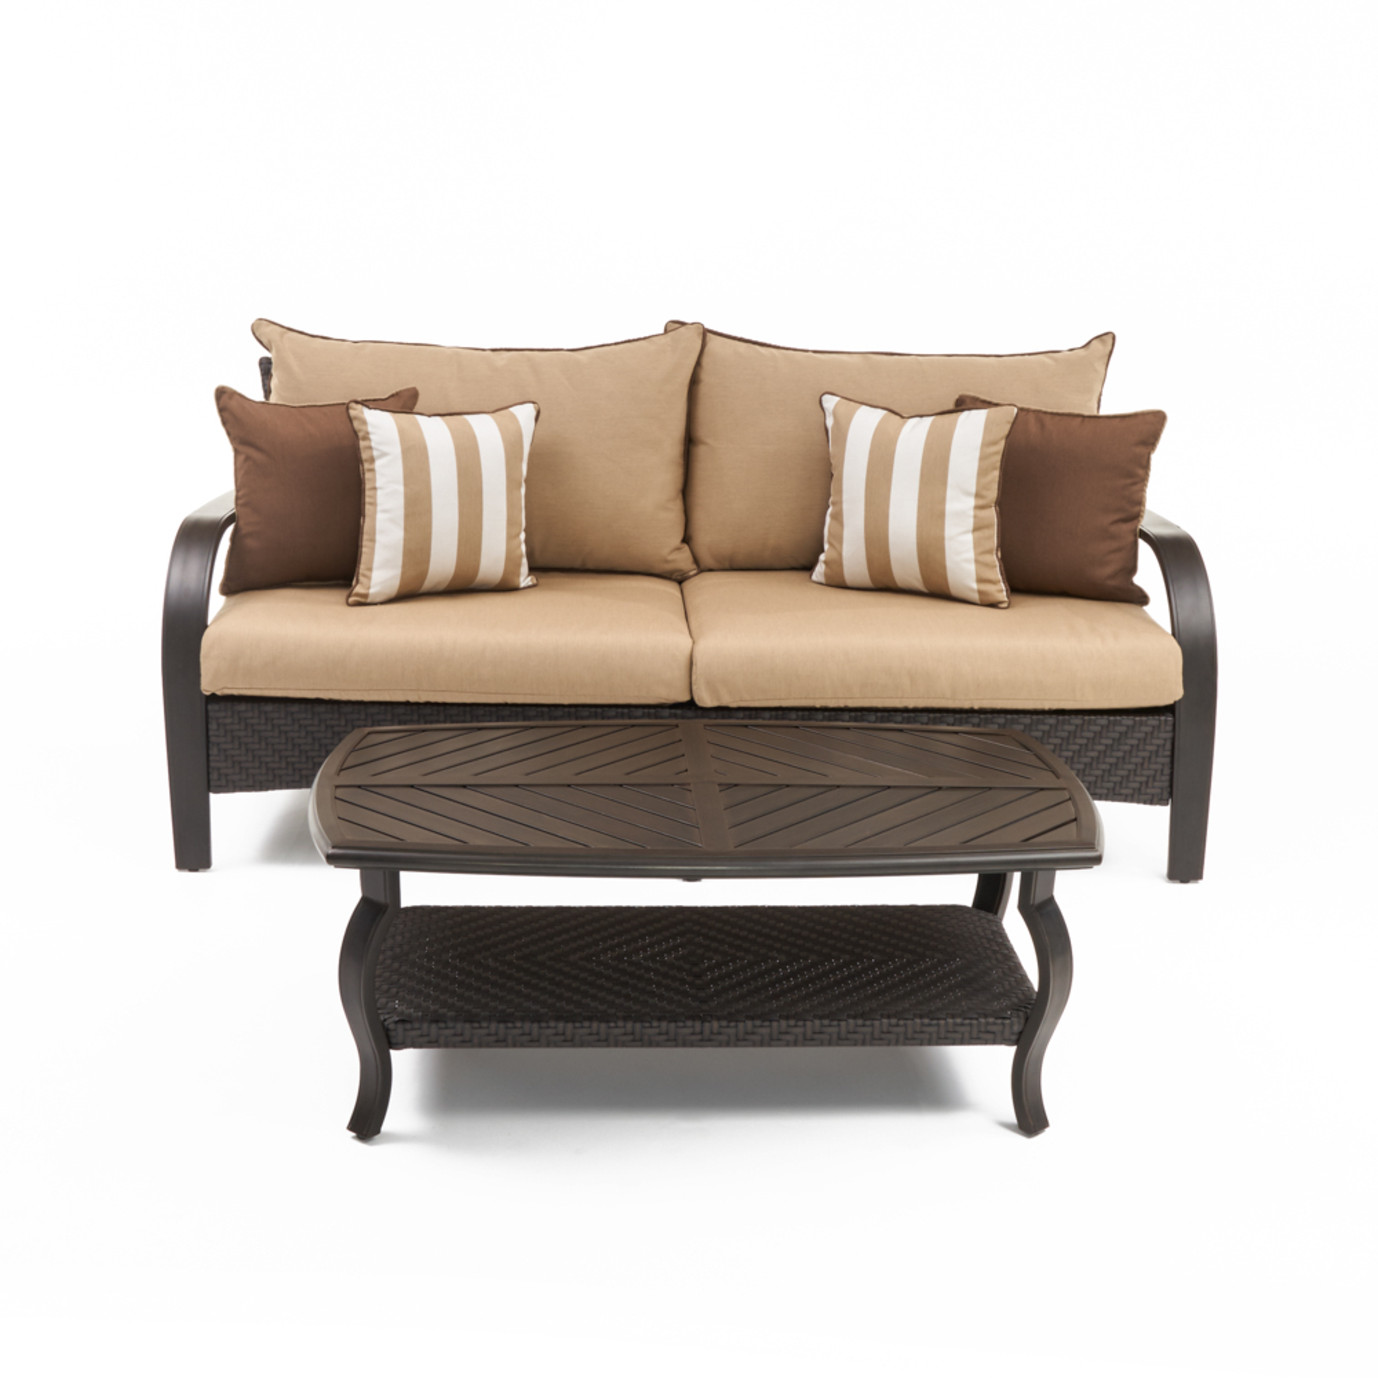 Barcelo™ Sofa & Coffee Table - Maxim Beige